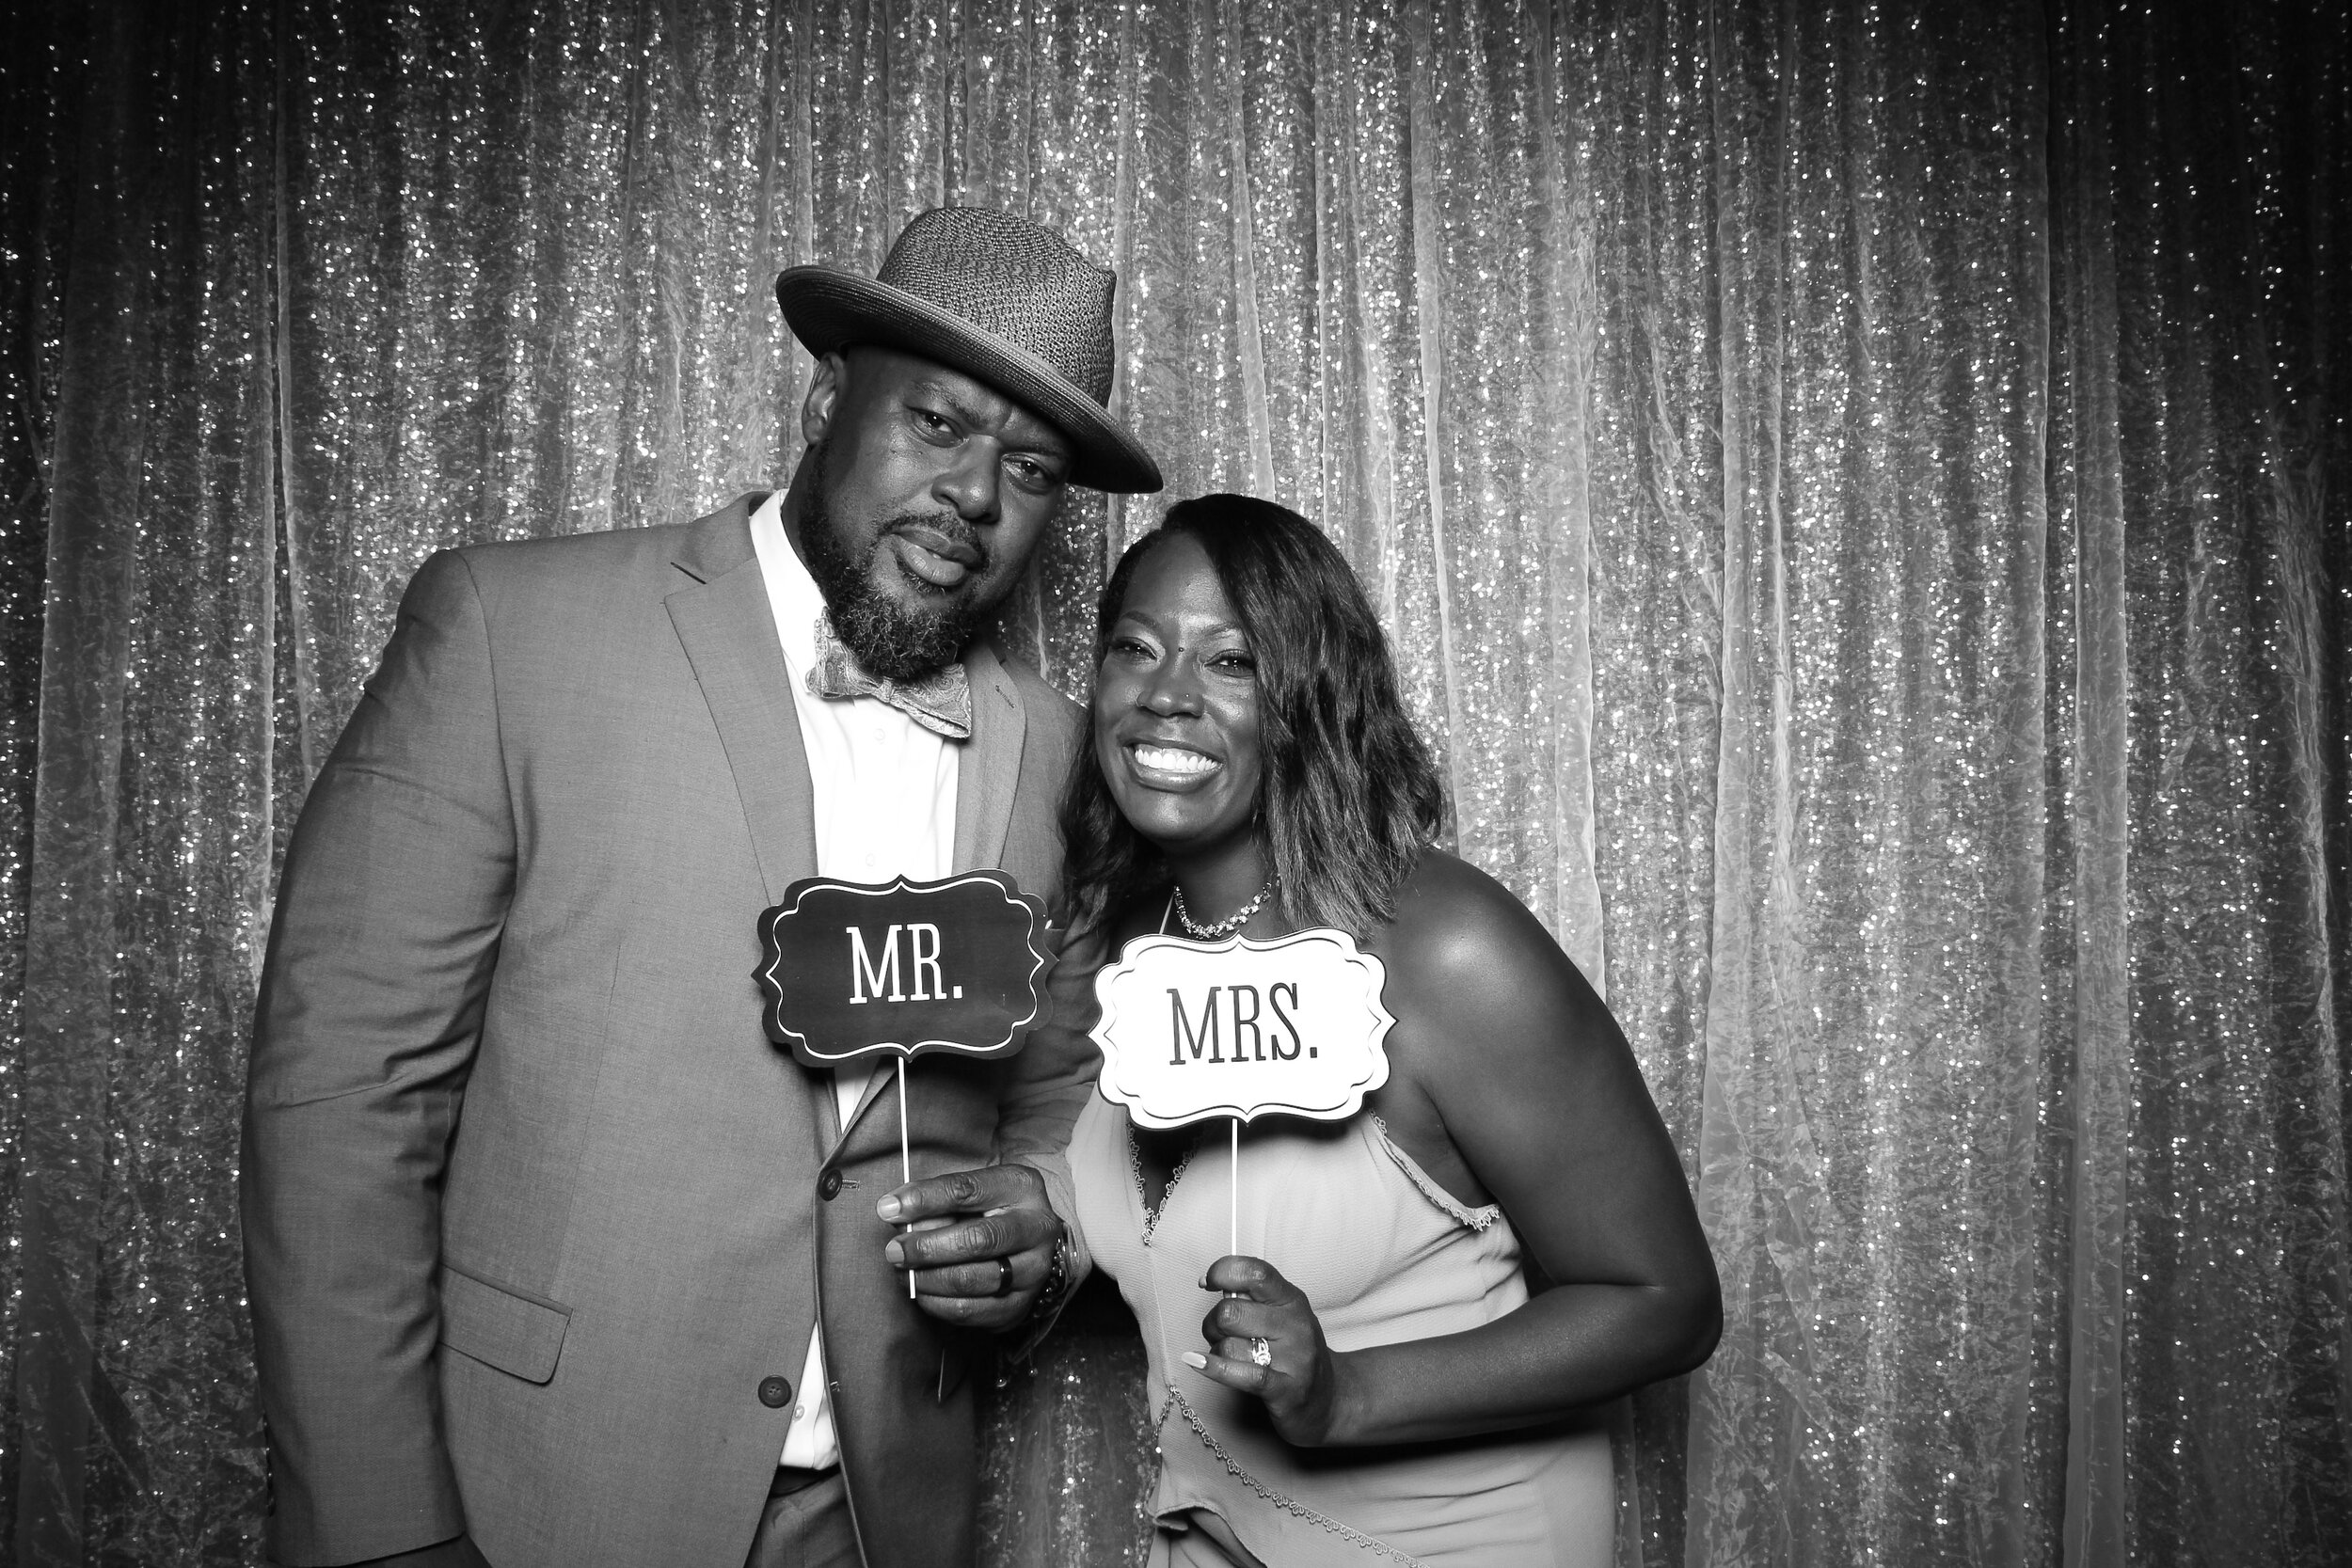 Ravisloe_Country_Club_Wedding_Photo_Booth_12.jpg